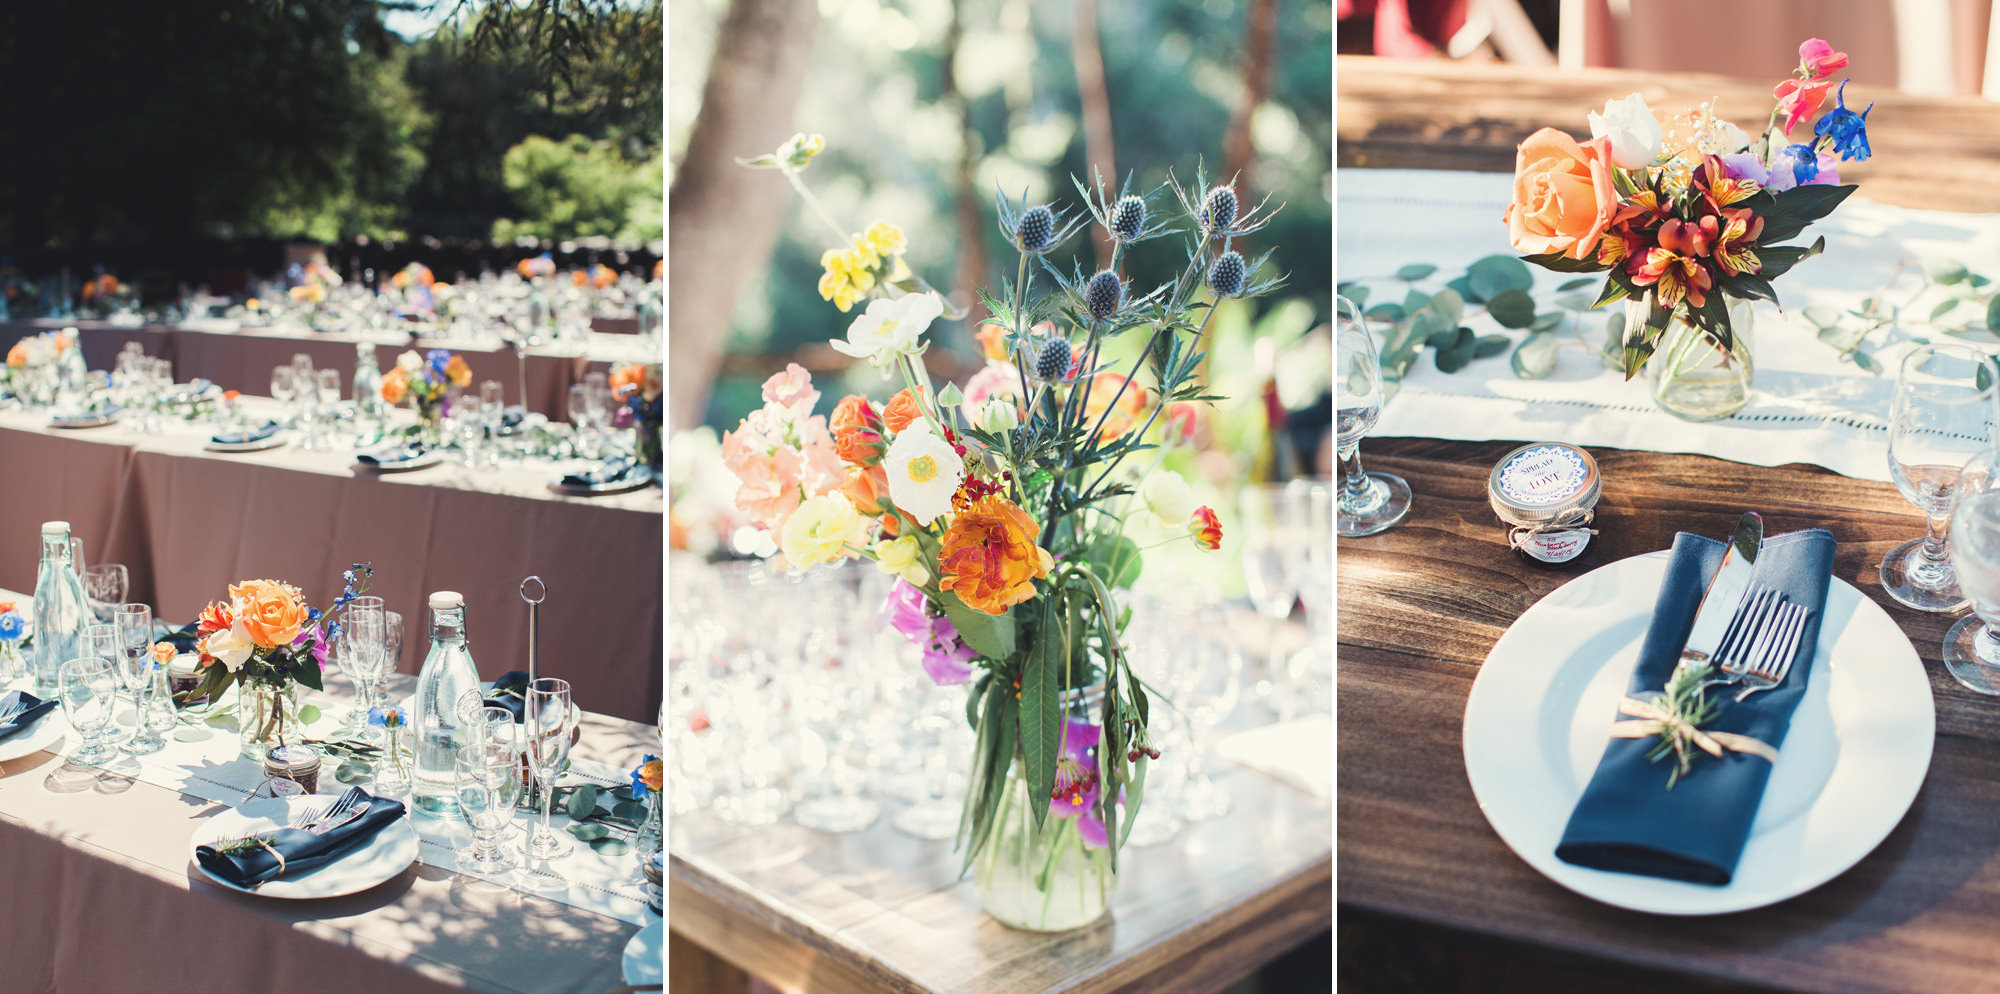 Backyard Wedding in California©Anne-Claire Brun 0019